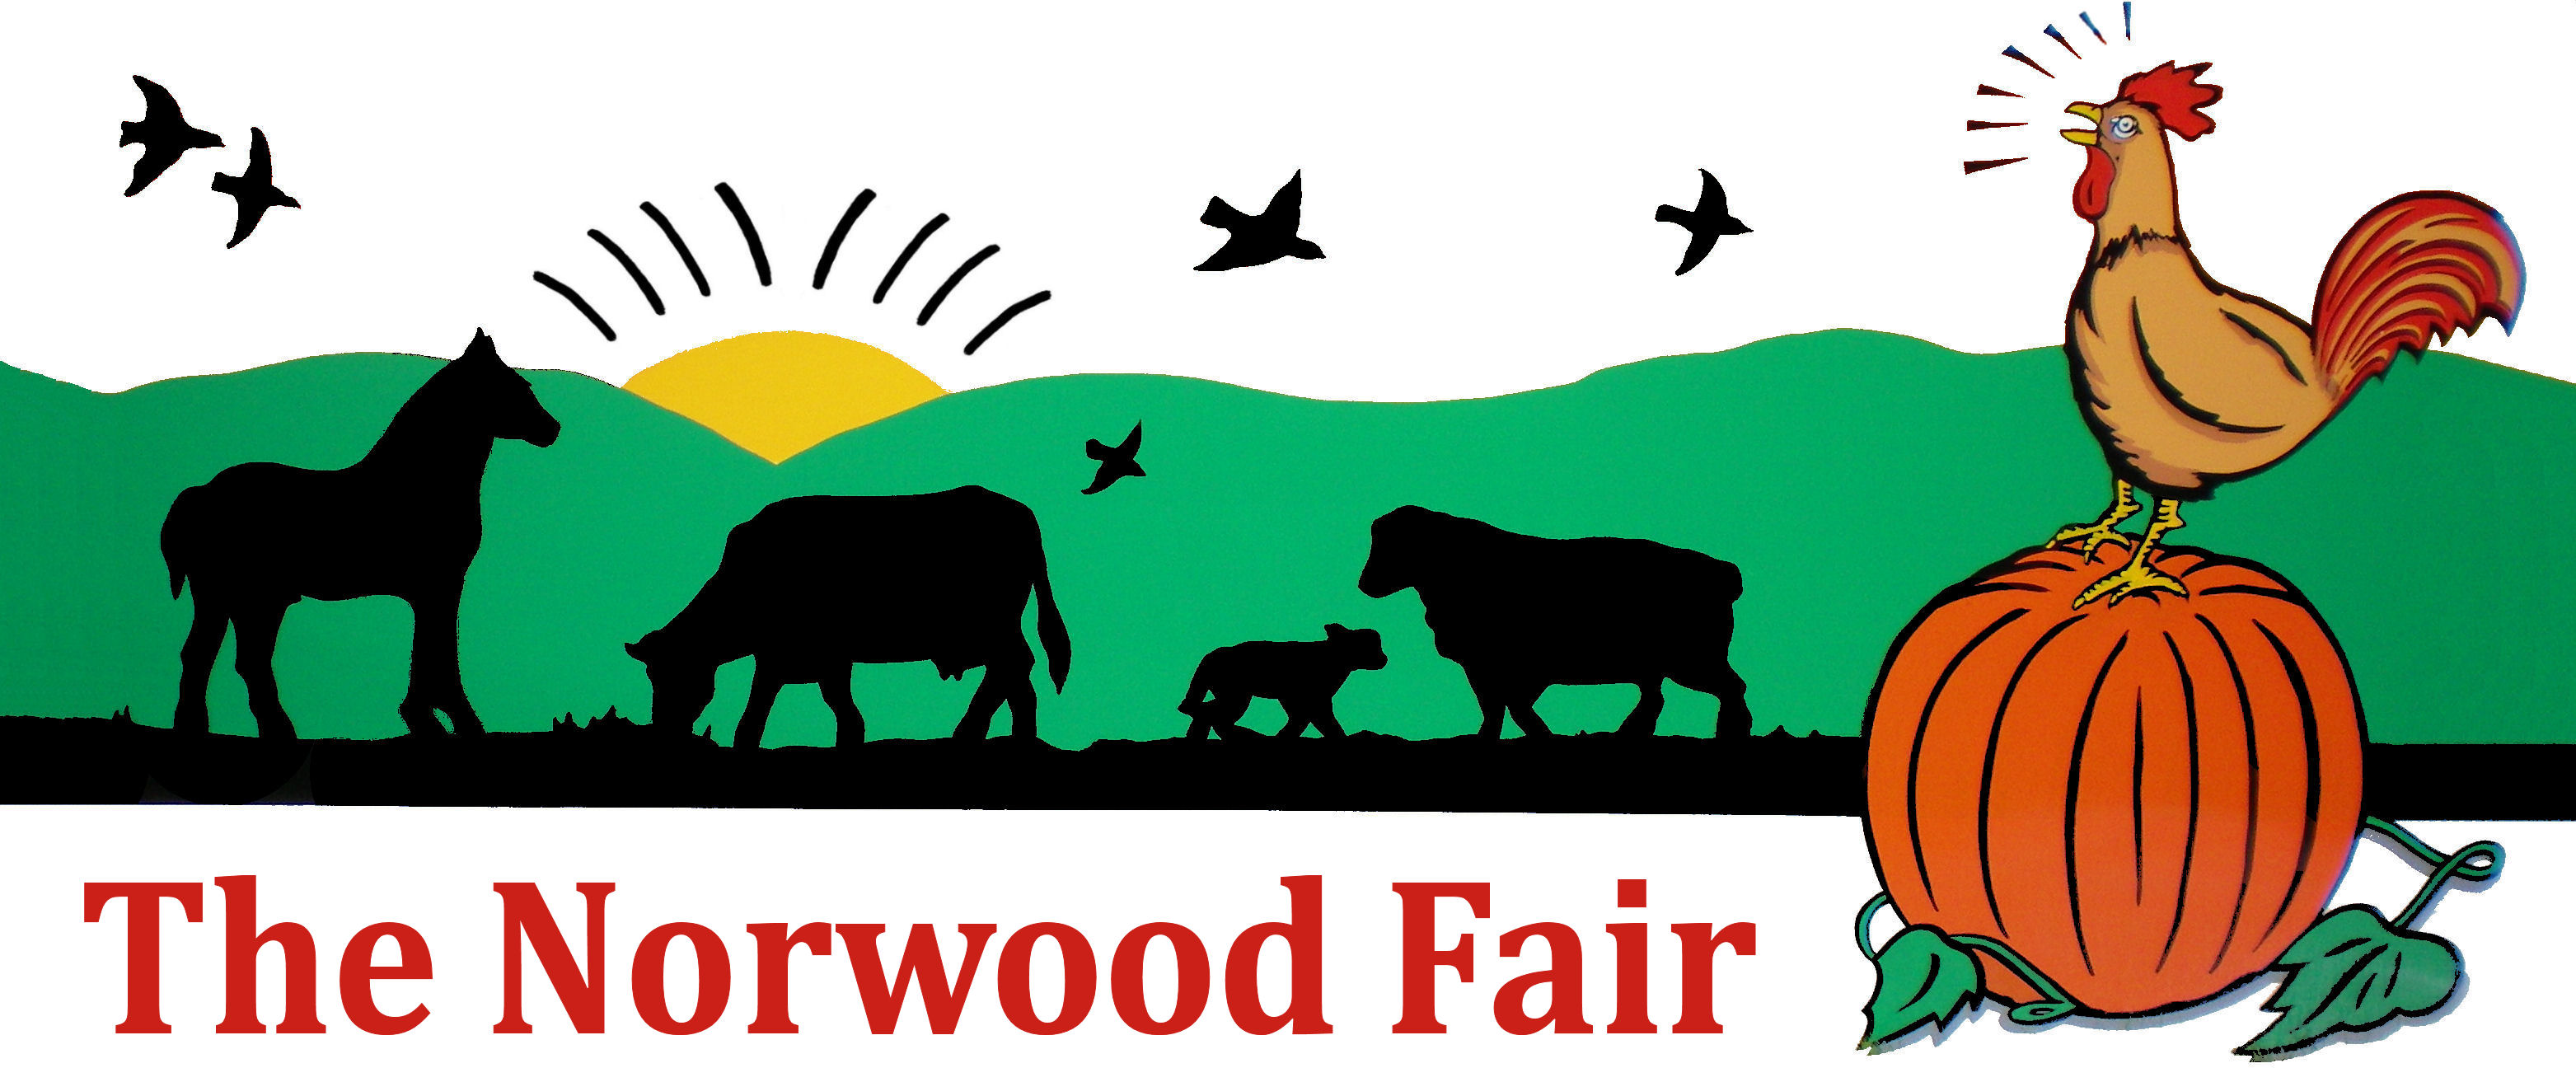 Norwood Fair lspe logo